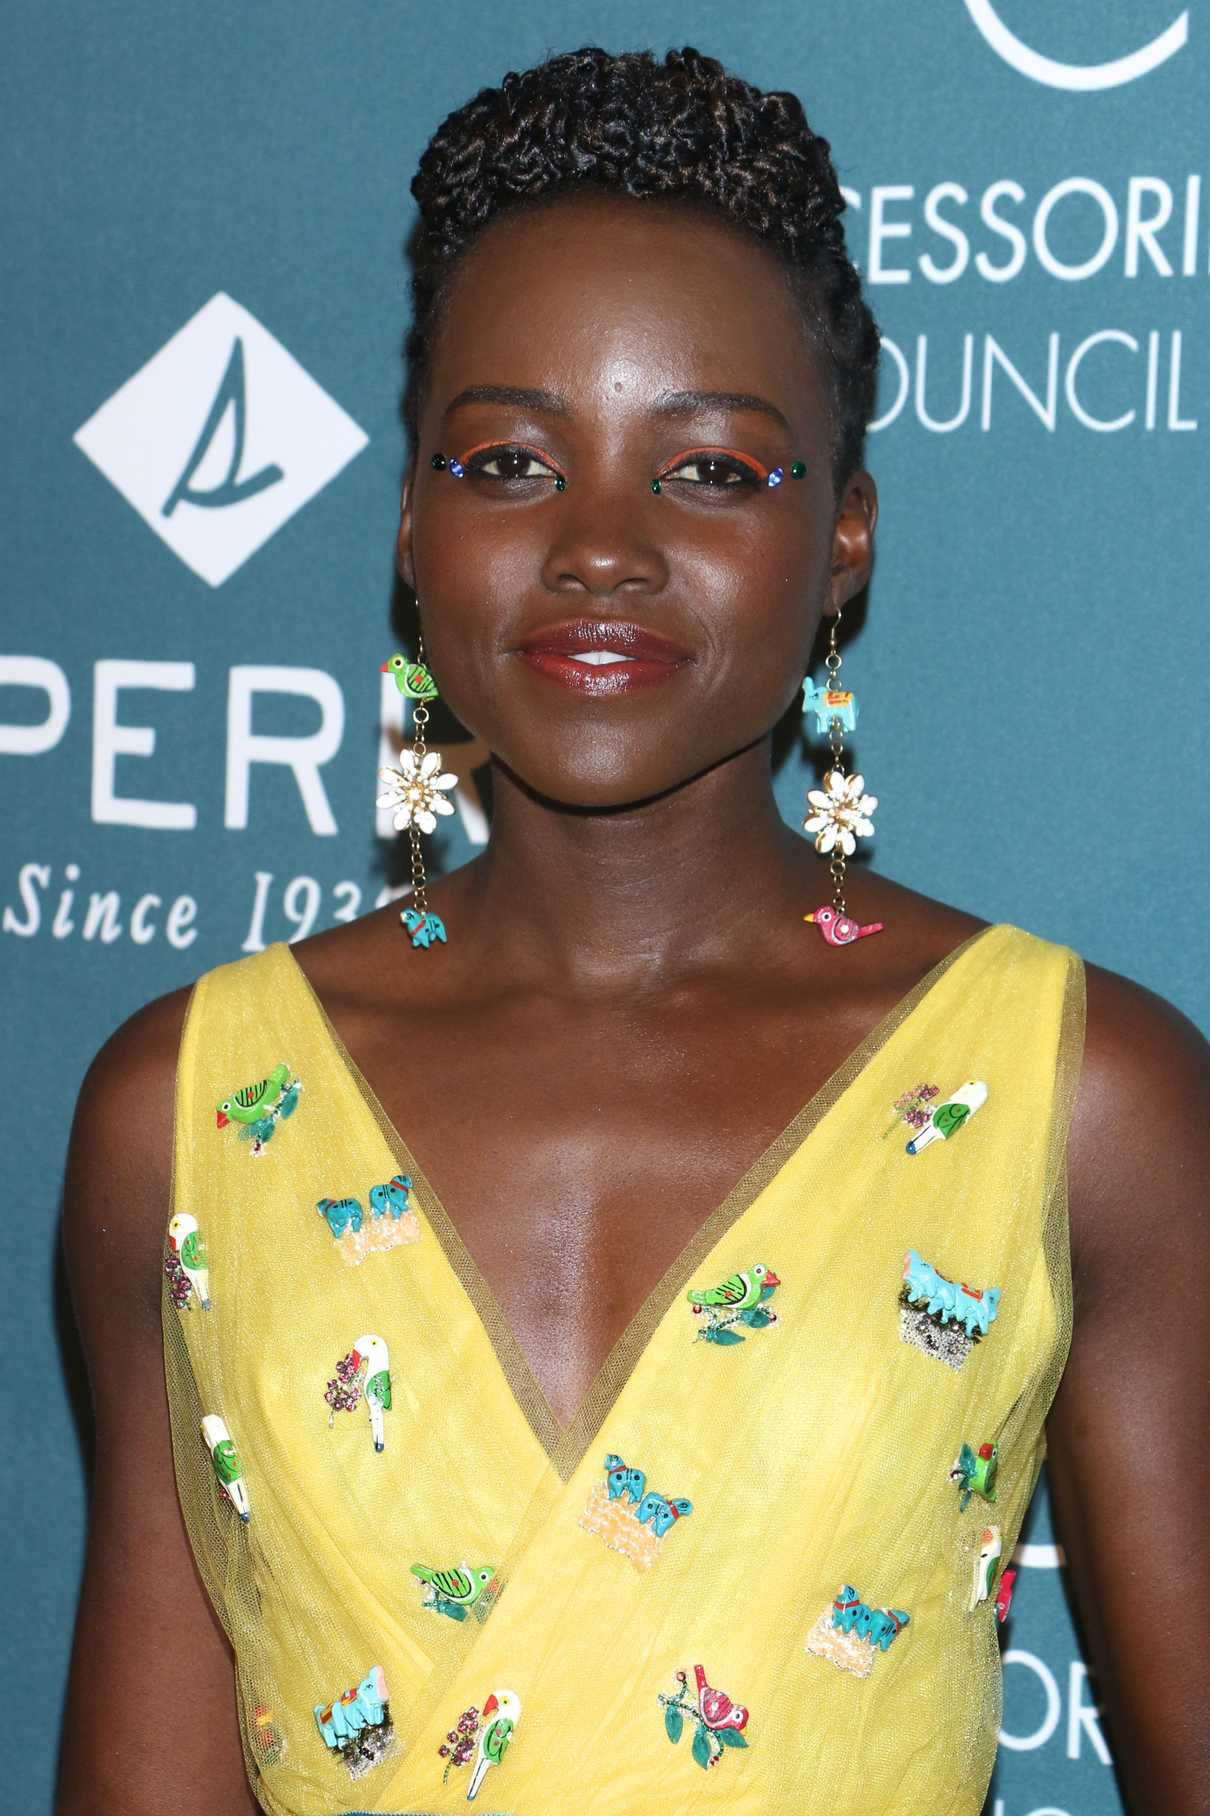 Lupita Nyong'o Attends the 22nd Annual Ace Awards in New York City 06/11/2018-5